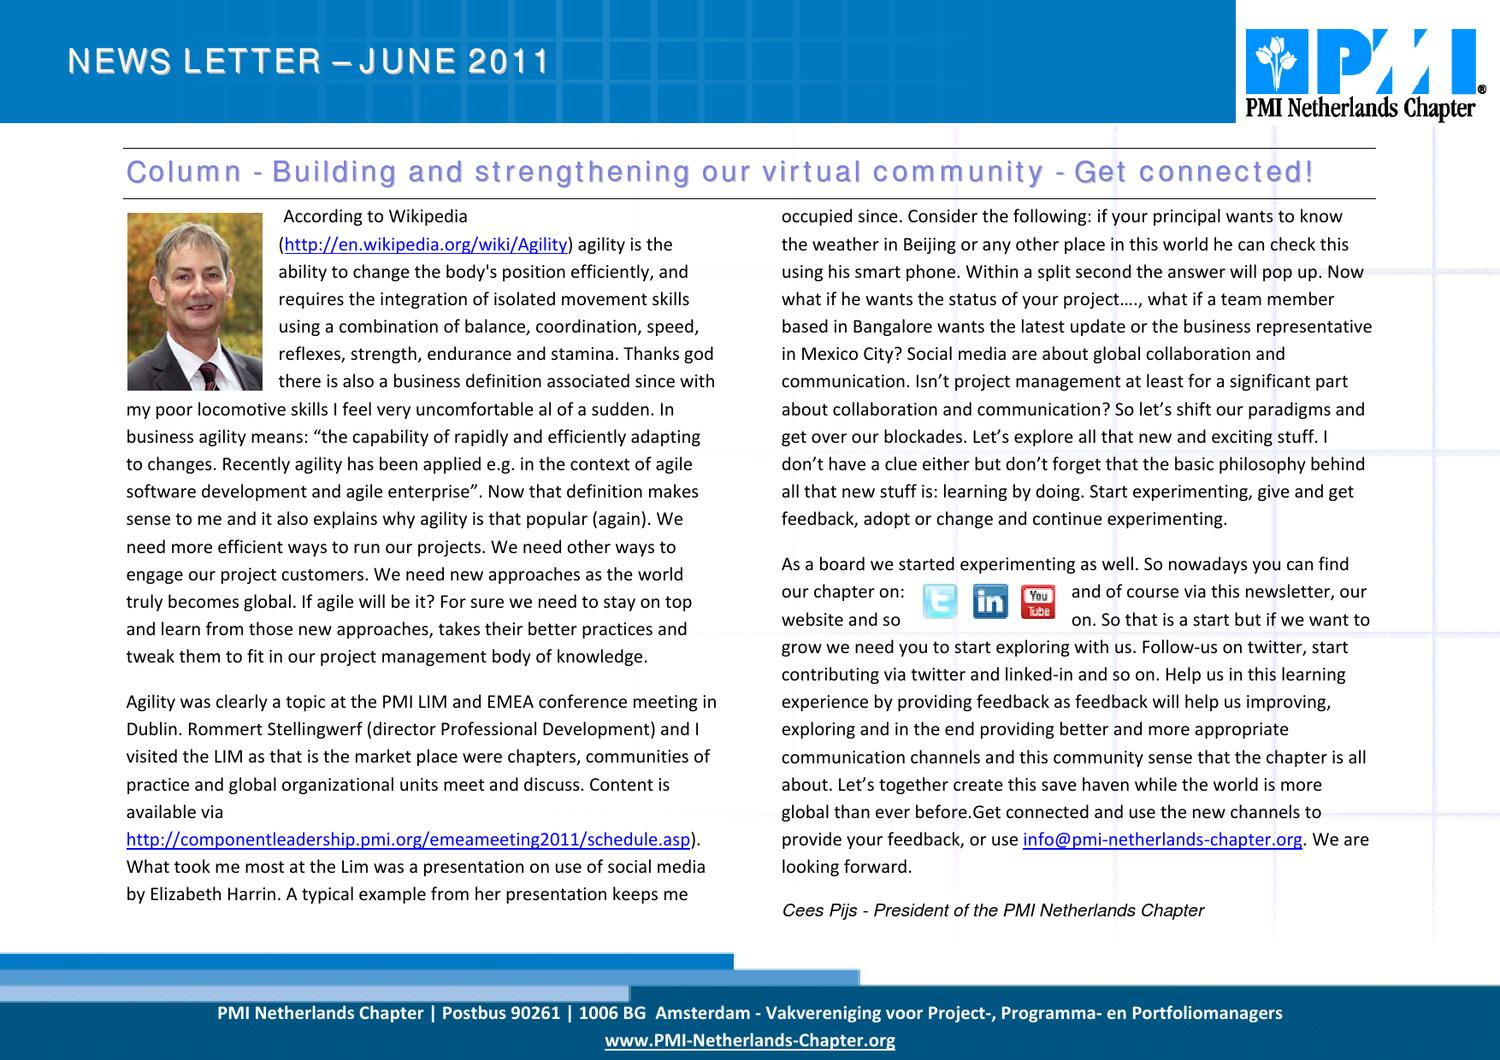 201106 Pmi Netherlands Newsletter By Pmi Netherlands Chapter Issuu